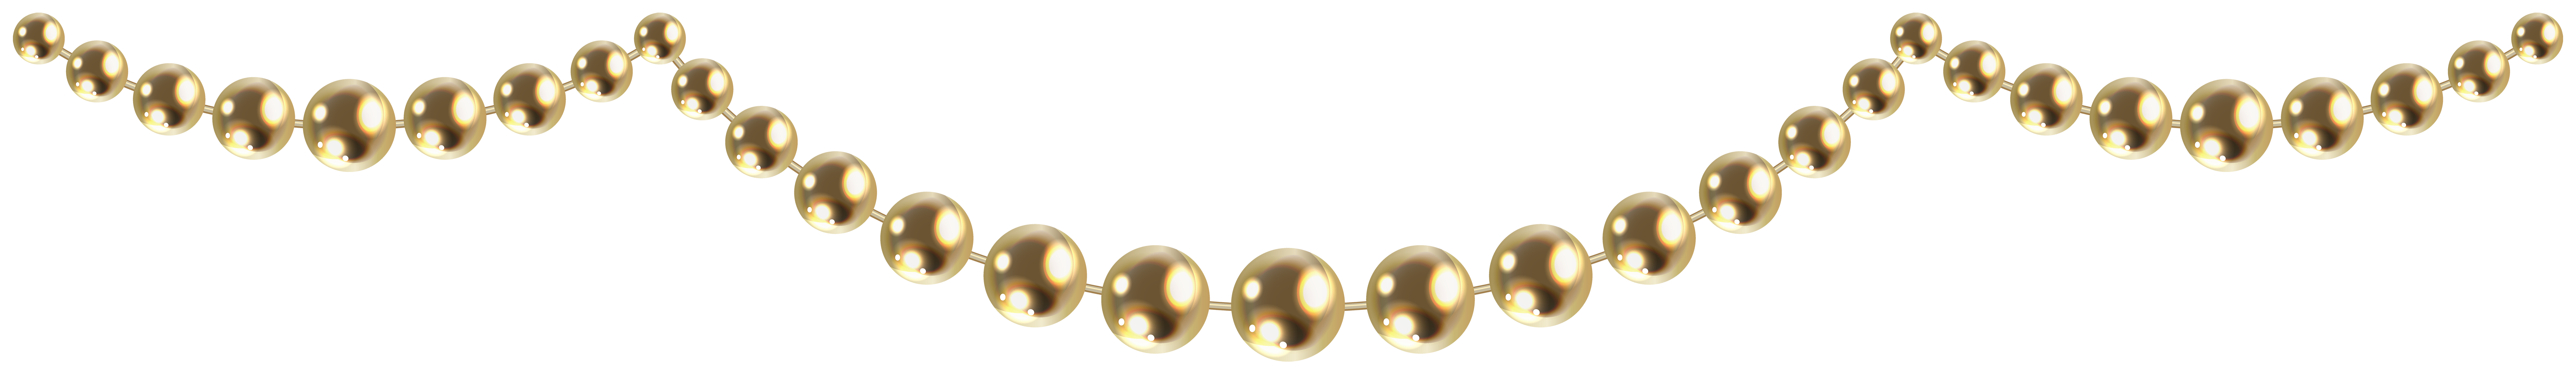 Pearls clipart divider. Https gallery yopriceville com